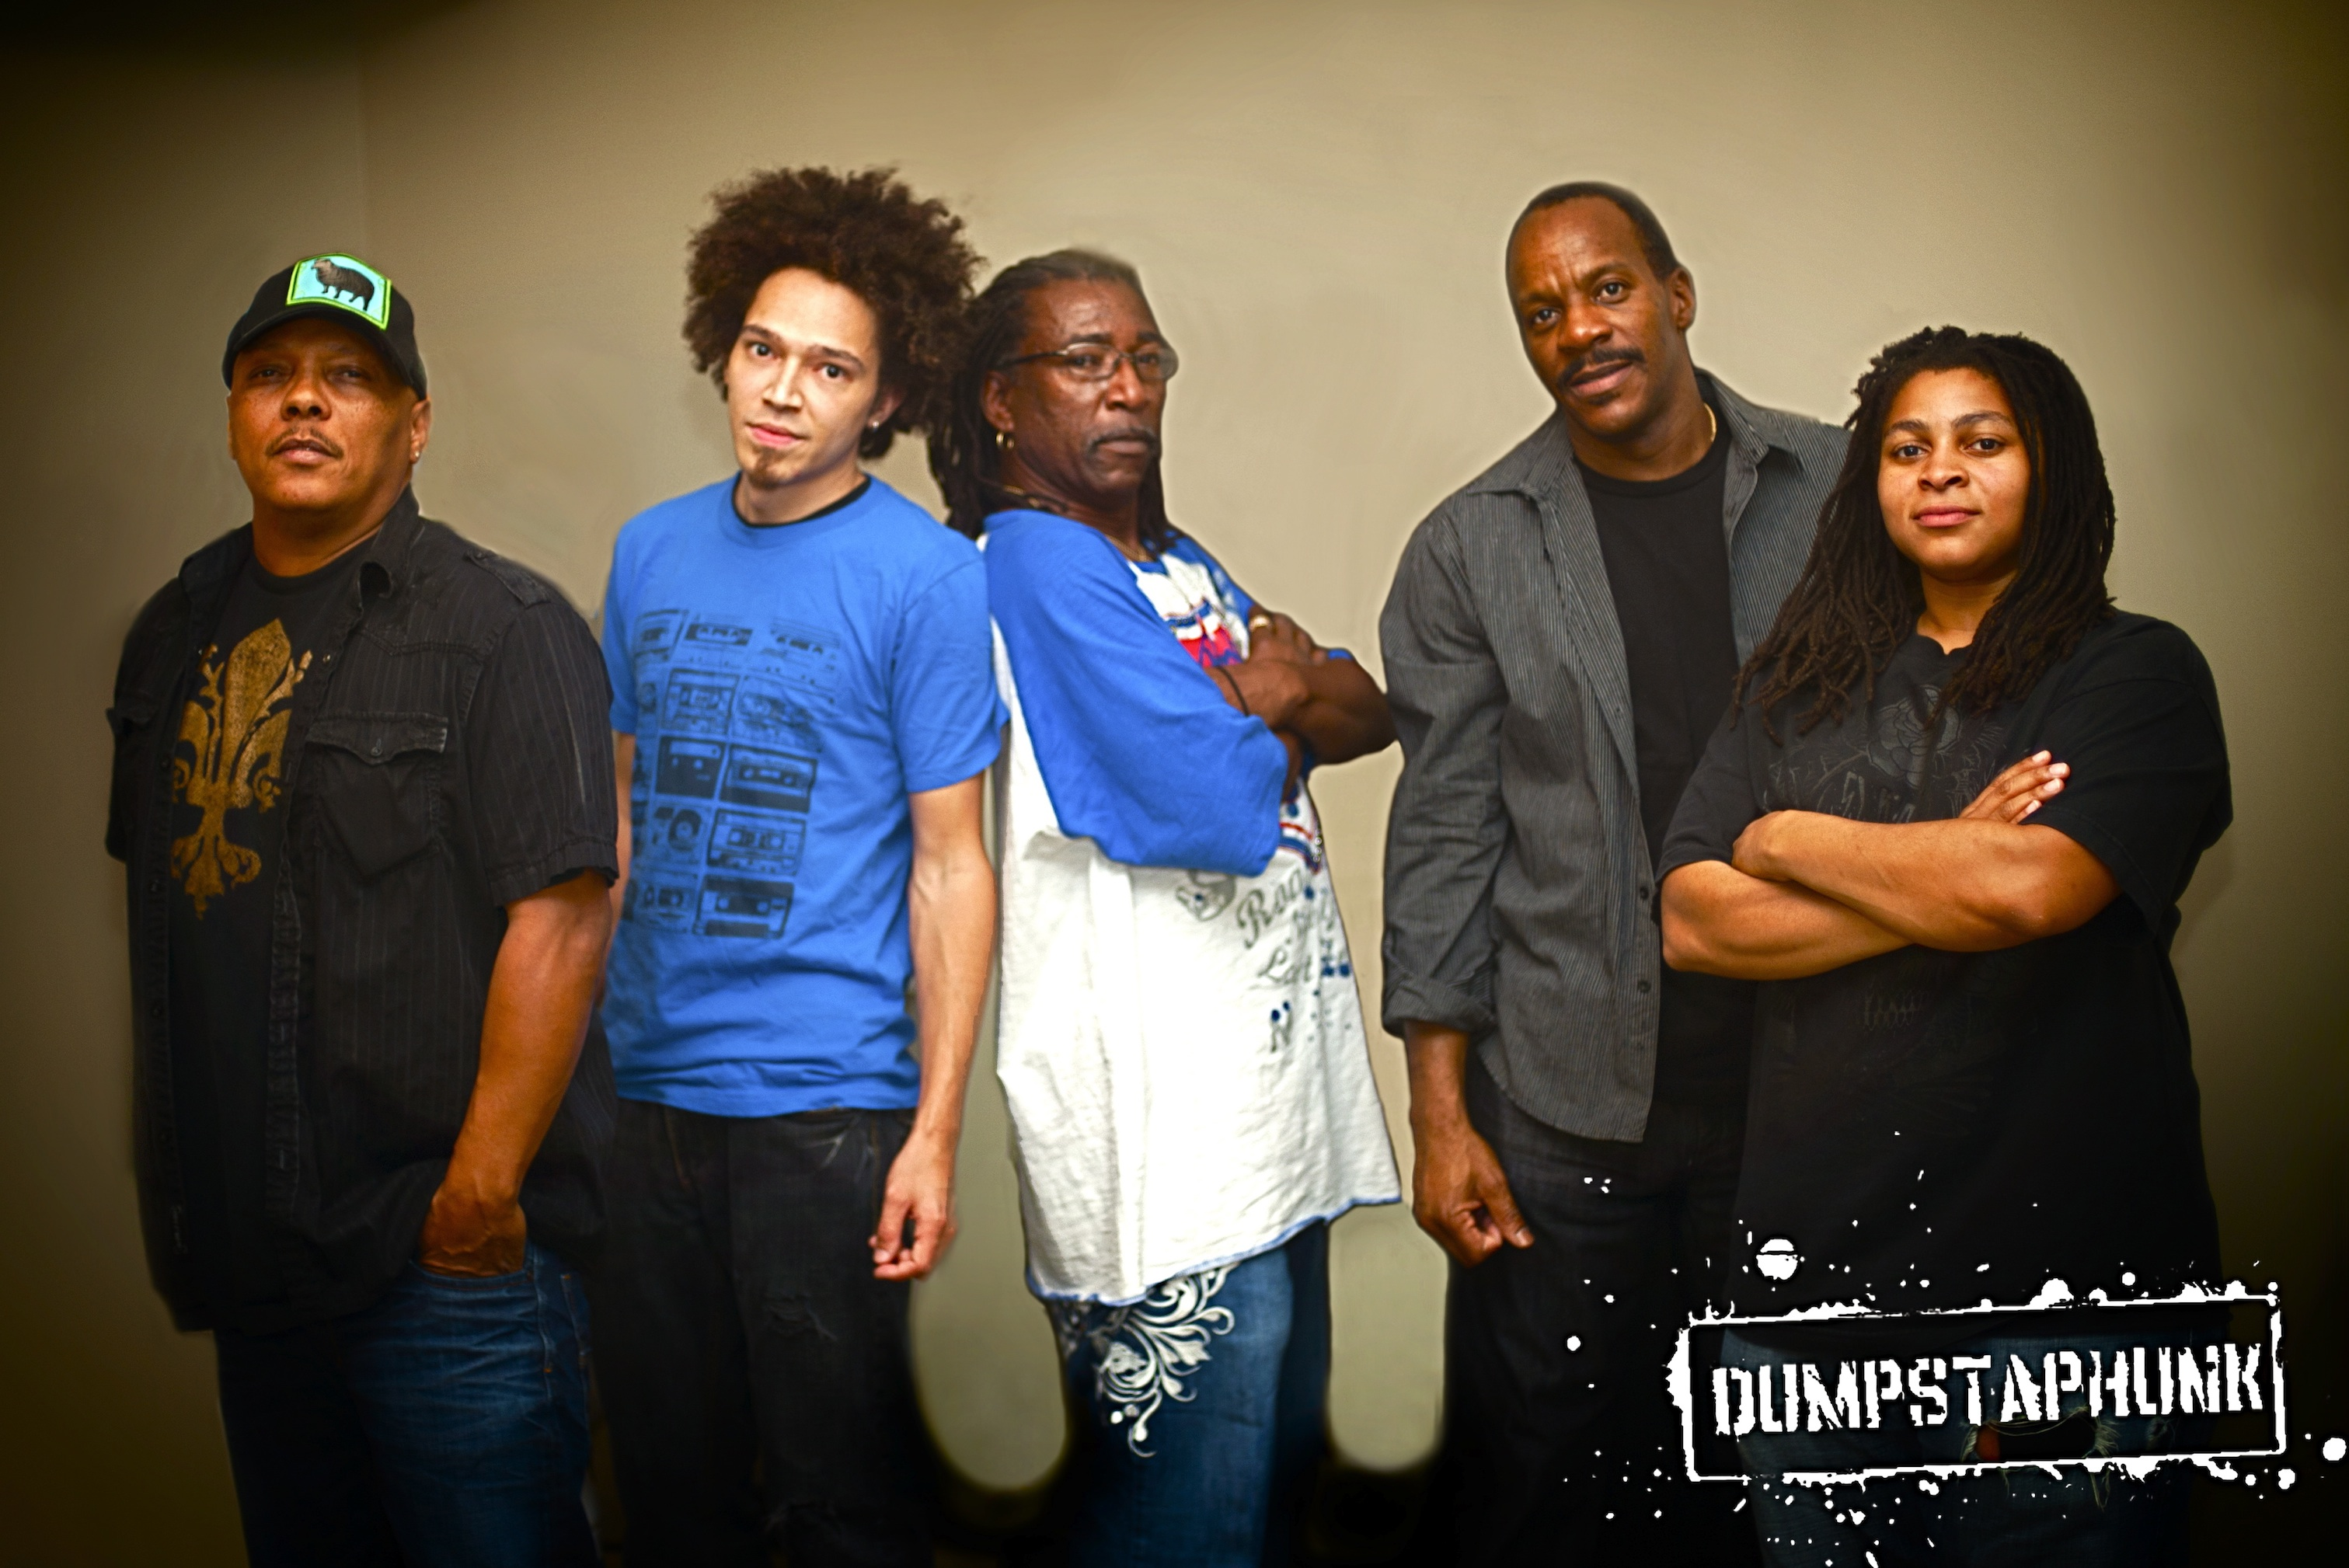 Dumpstaphunk Photo